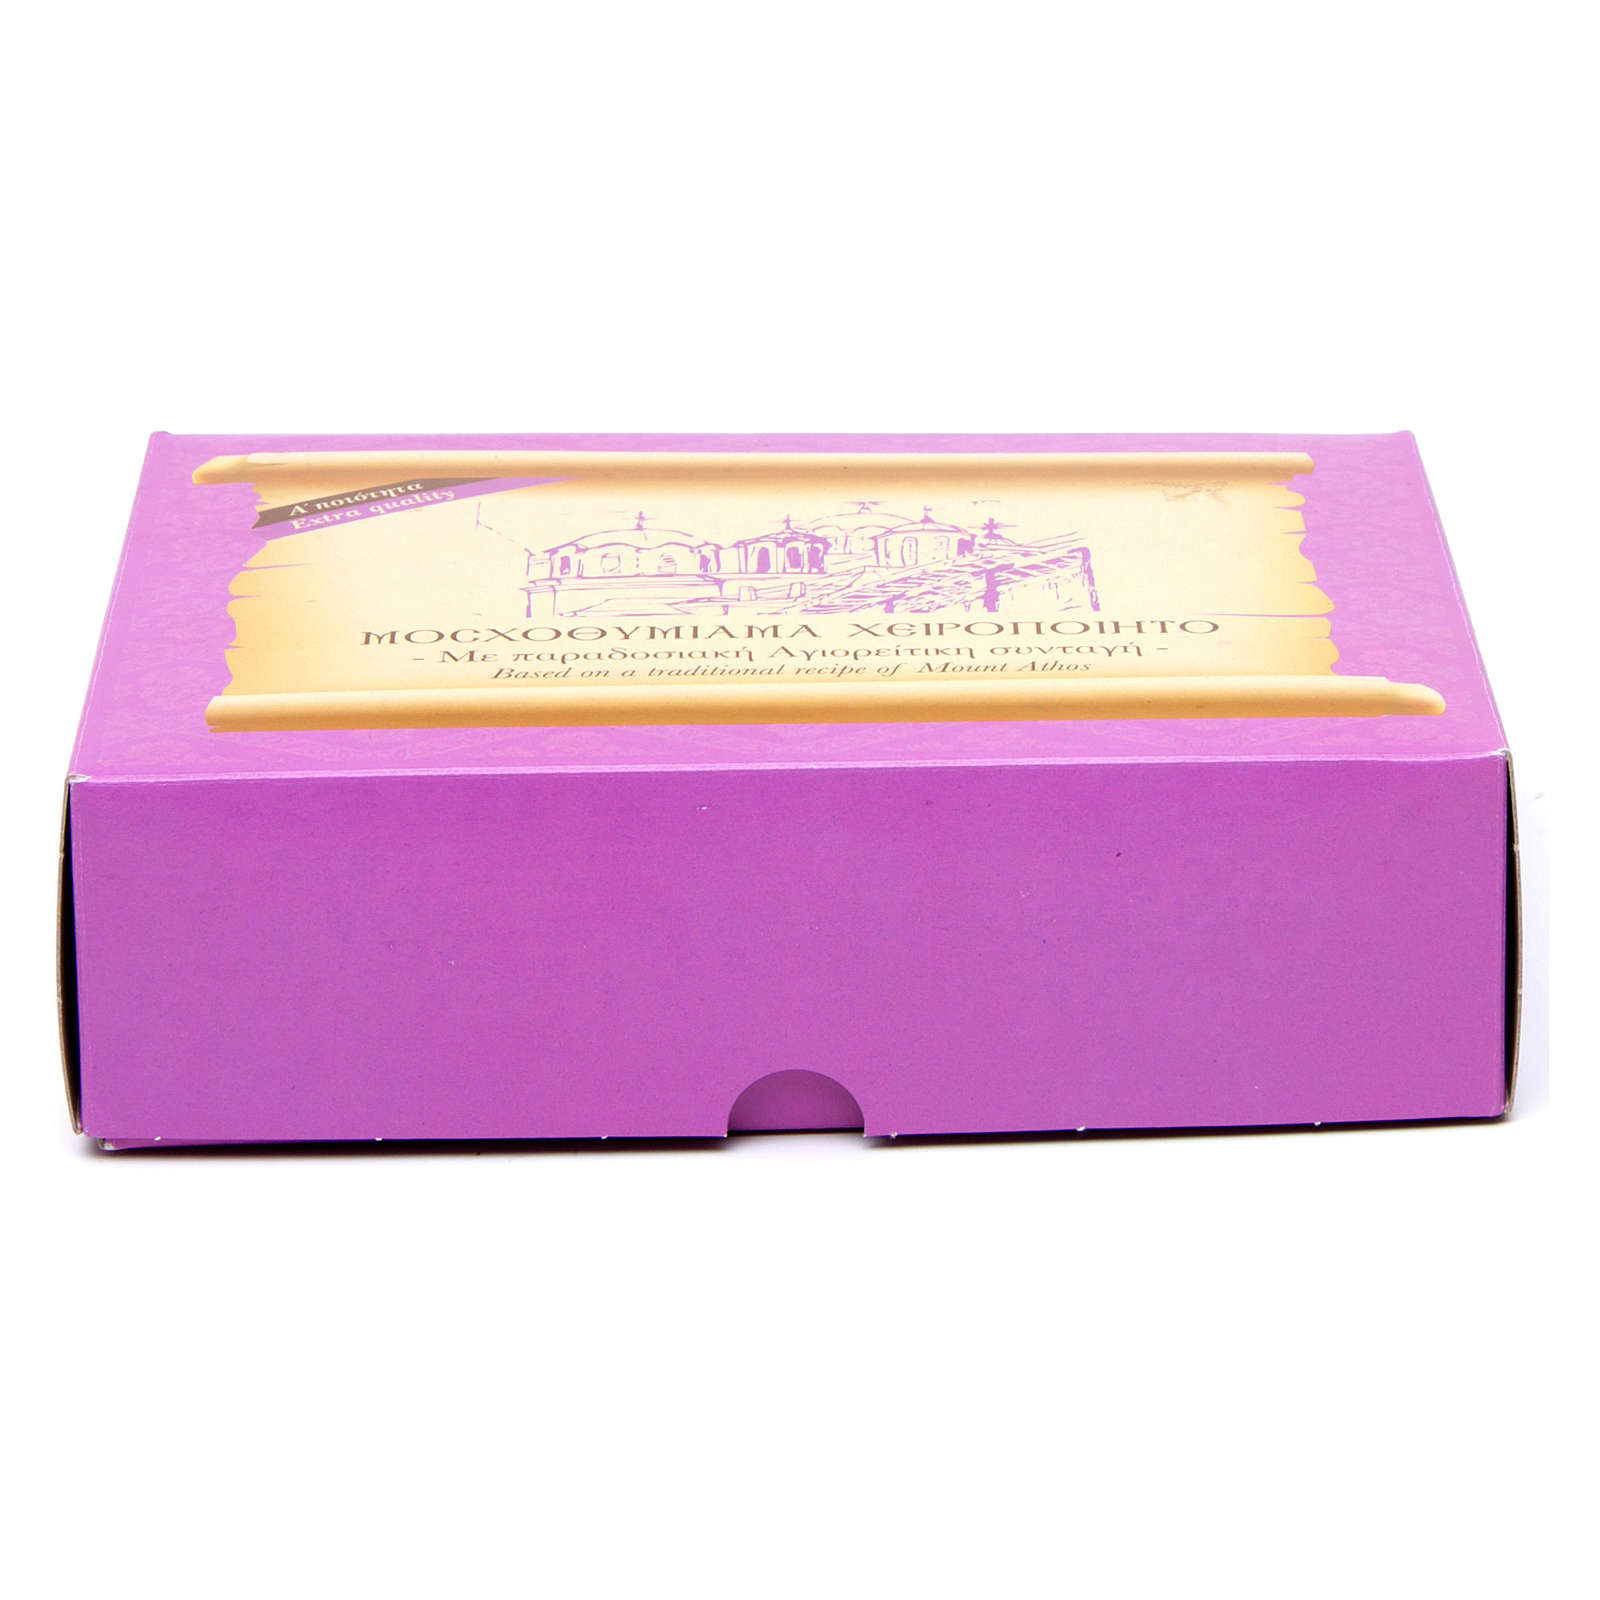 Lemon flower-scented Greek incense 1 kg 3